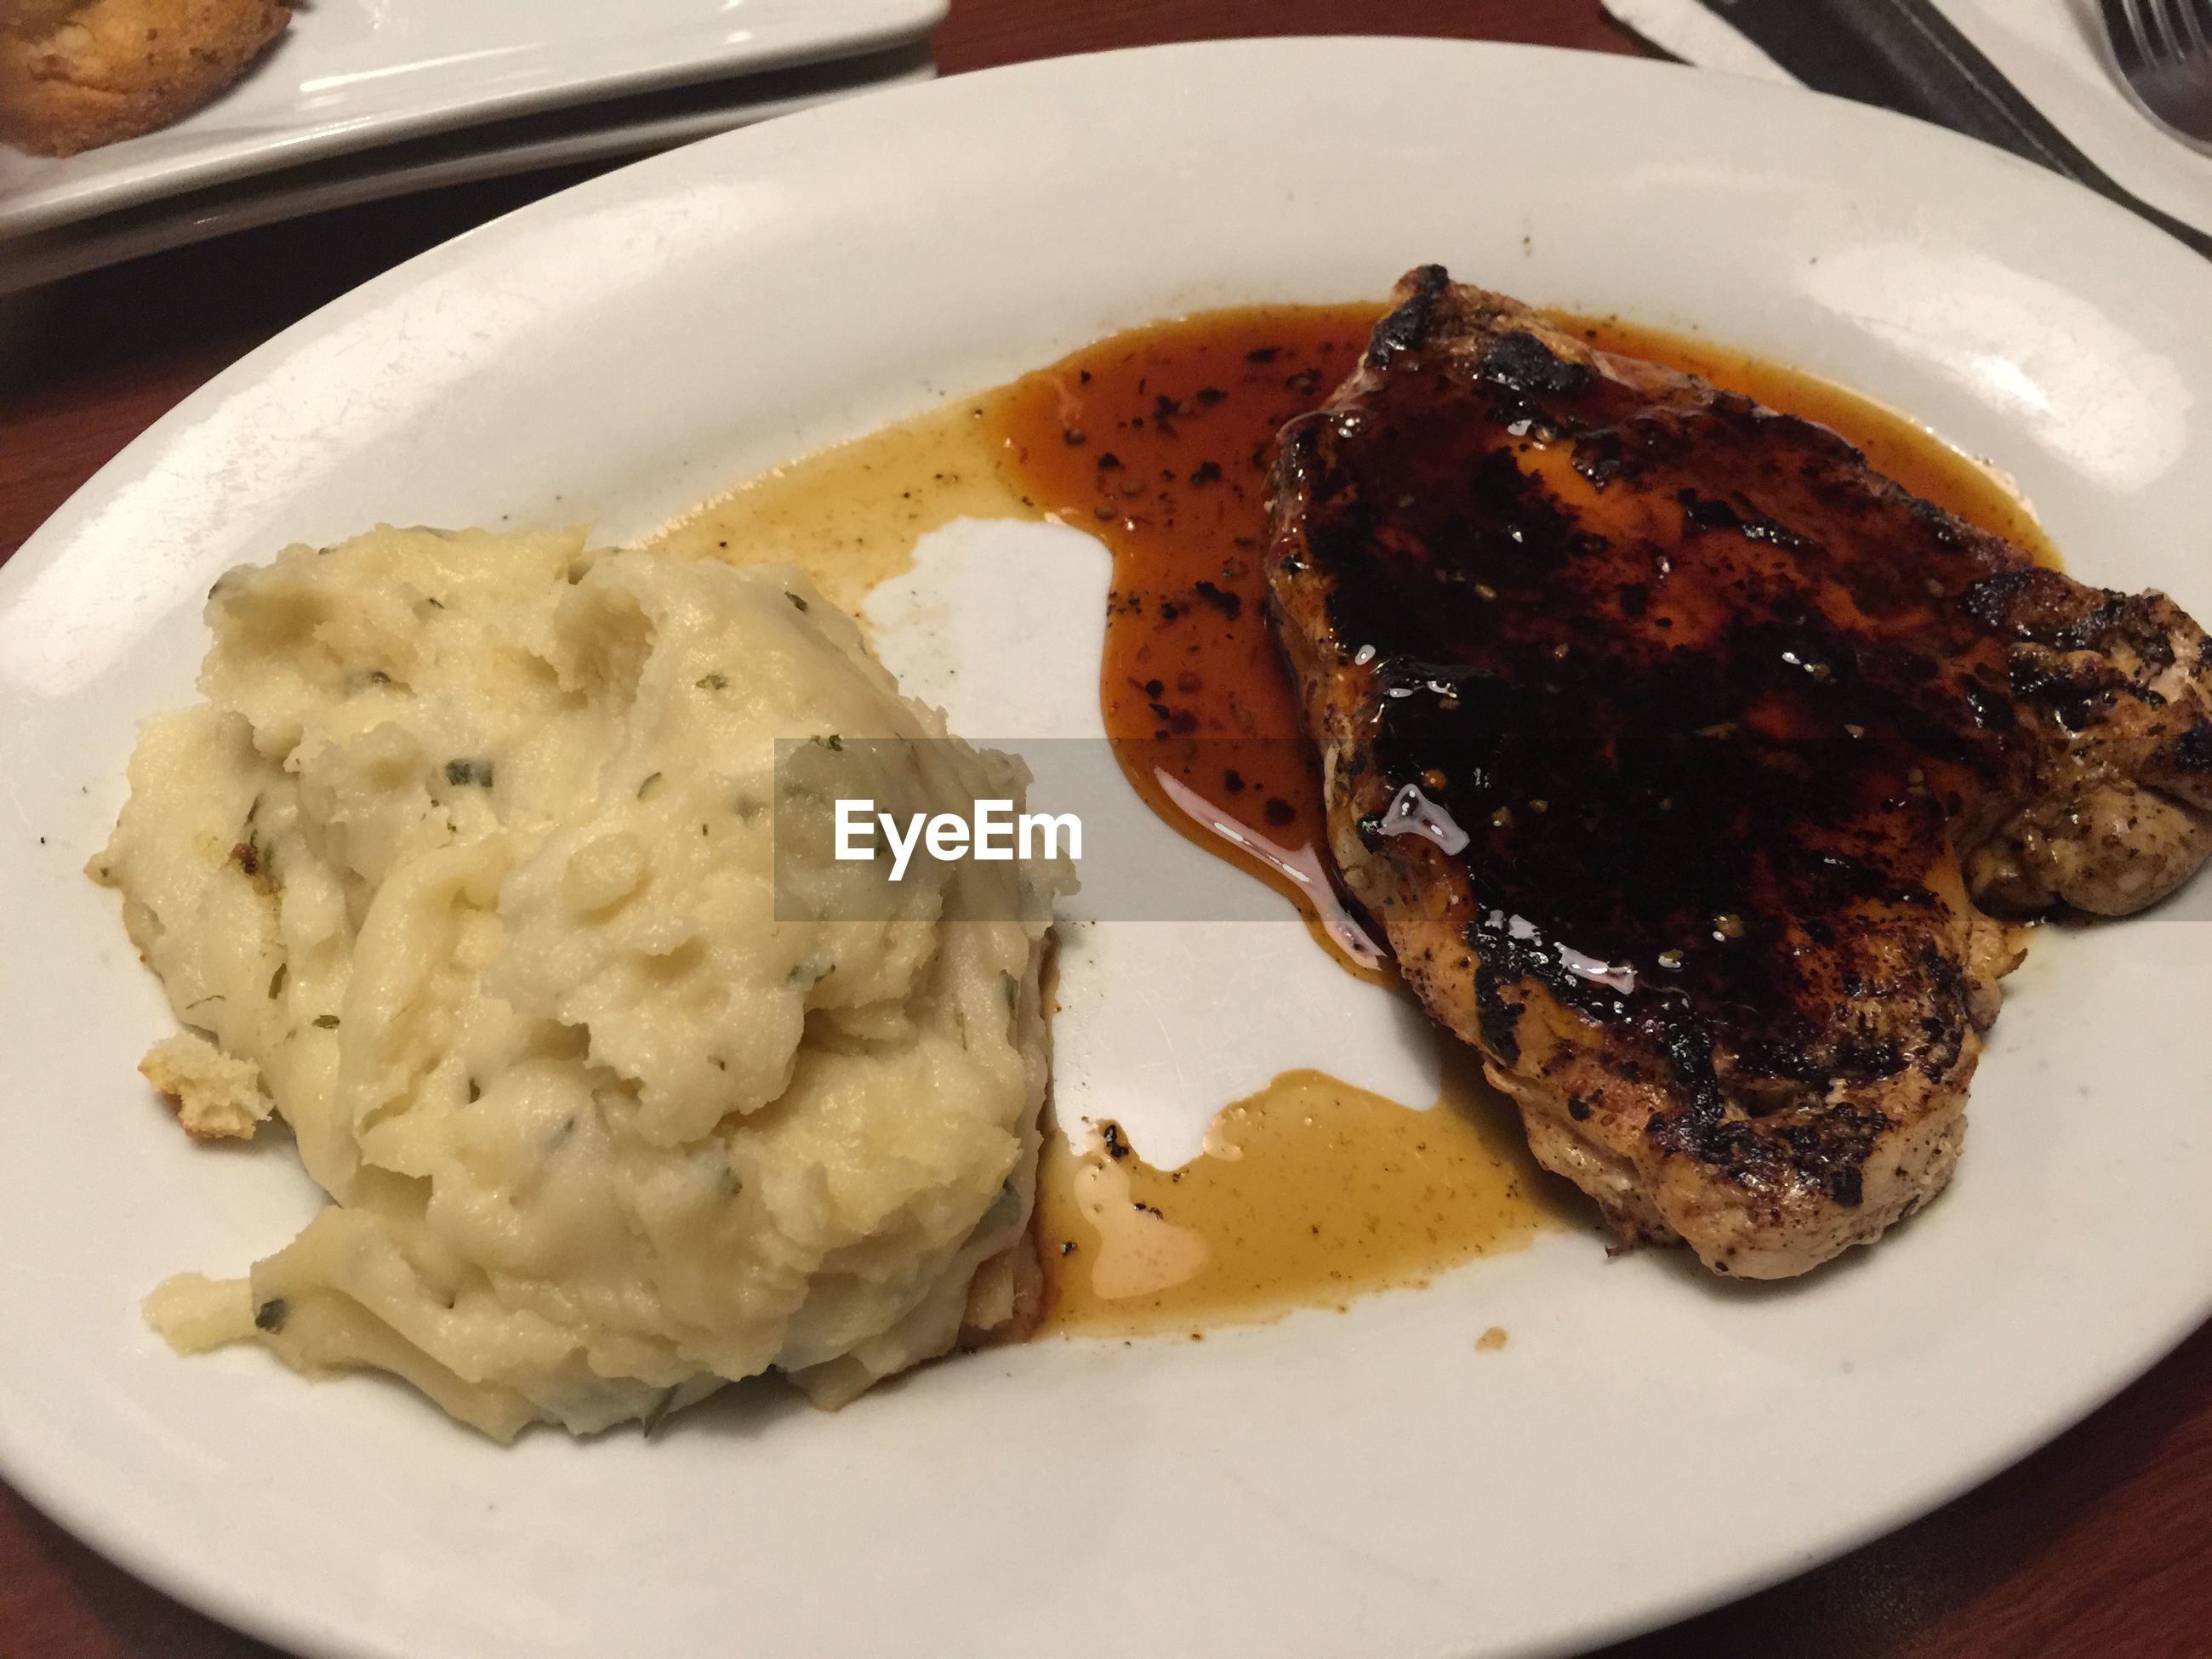 Close-up of mashed potatoes and meat on plate in restaurant